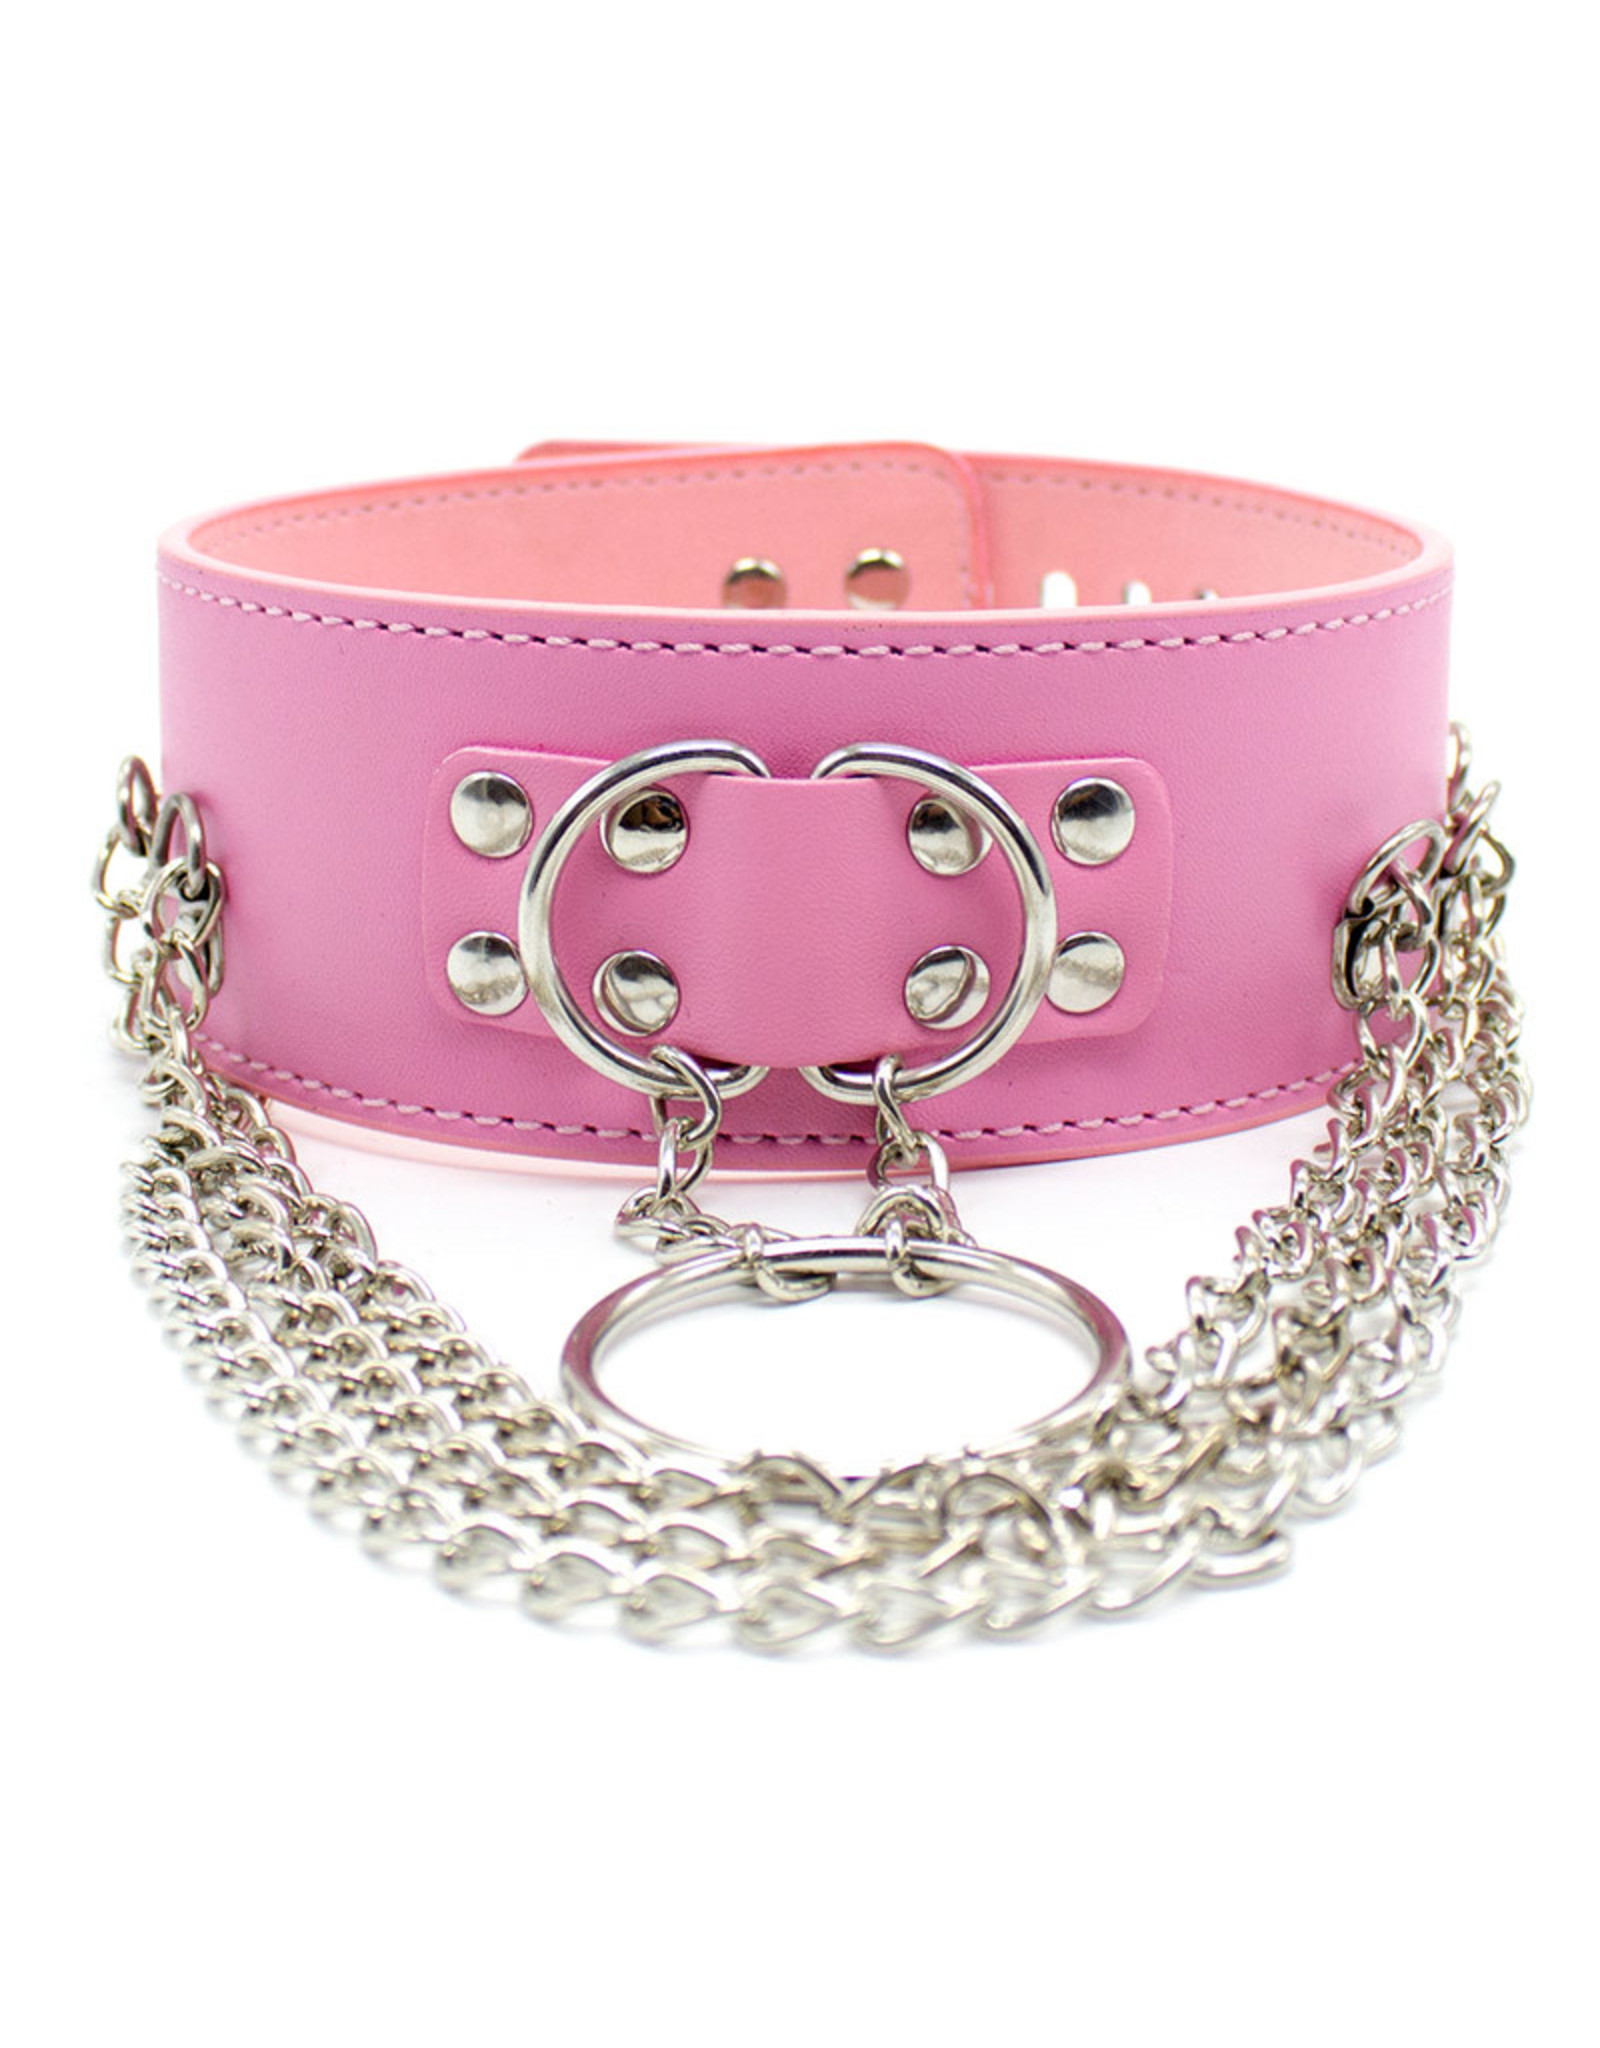 PU LEATHER PUNK CHOKER COLLAR - PINK